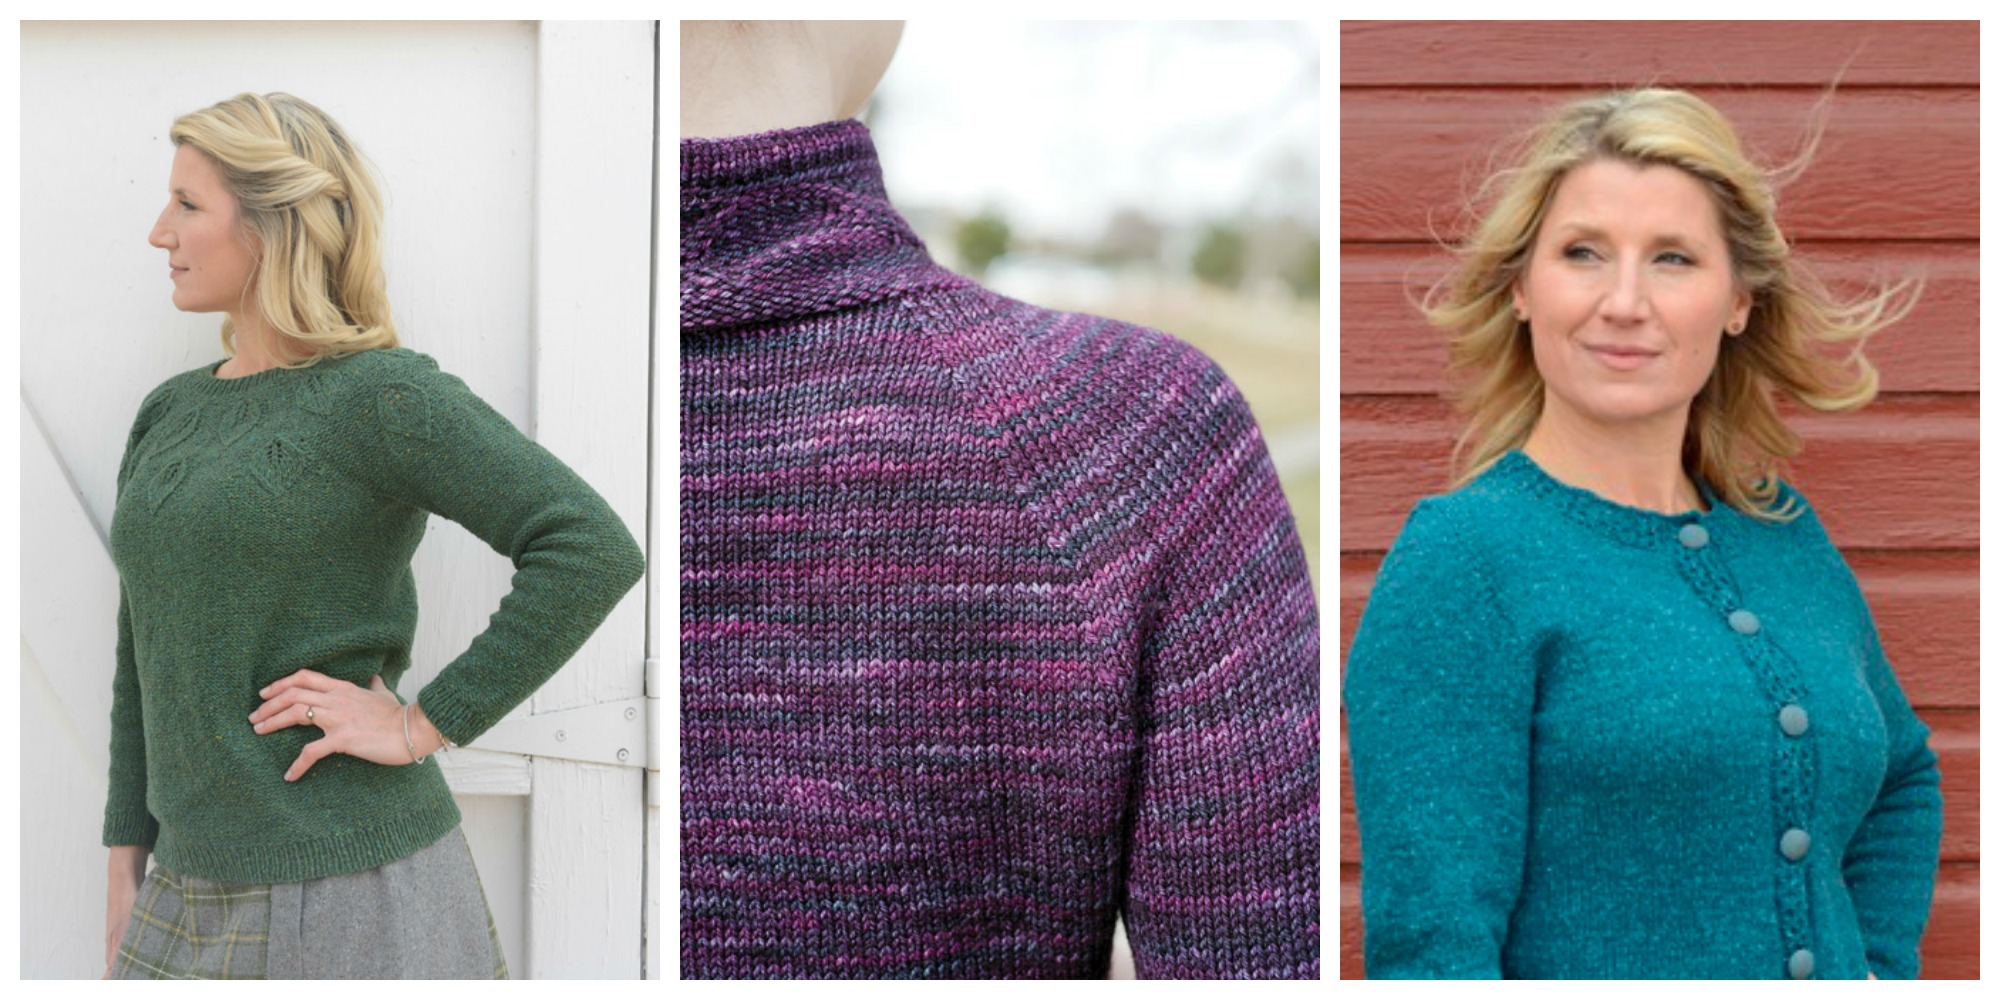 Seamless knitting in 3 kinds of sleeves.